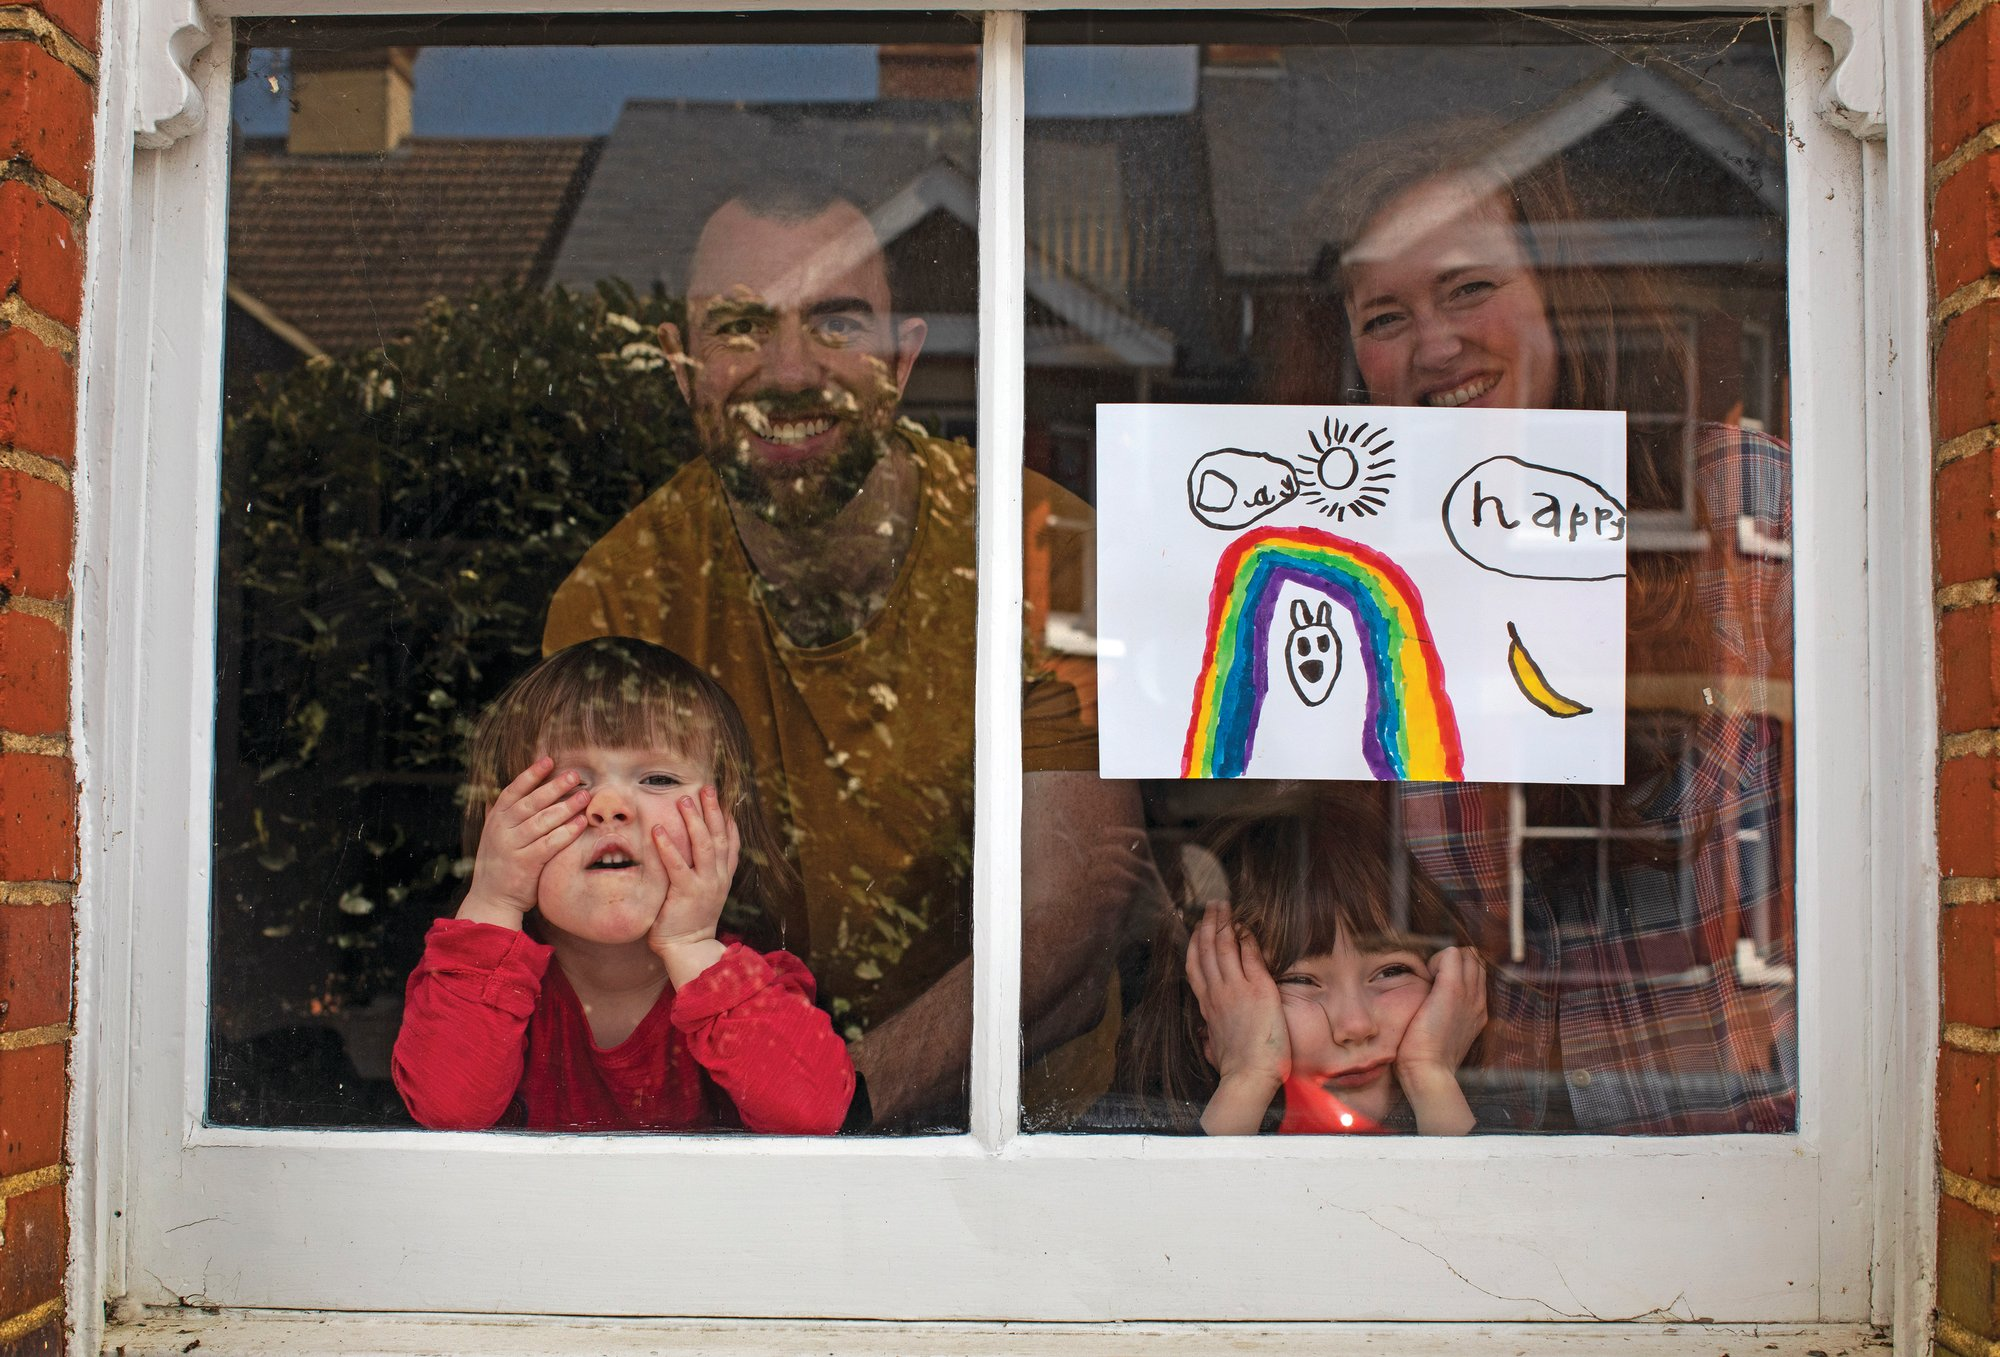 Amelie and her sister, Camille, watch from their front window as the lockdown enters its third week along with their parents, Victoria and Damian Kerr, in Berkhamsted on April 4. Victoria and Damian are both working full time from home but are enjoying the chance the lockdown has given them to spend more time together as a family despite its challenges.